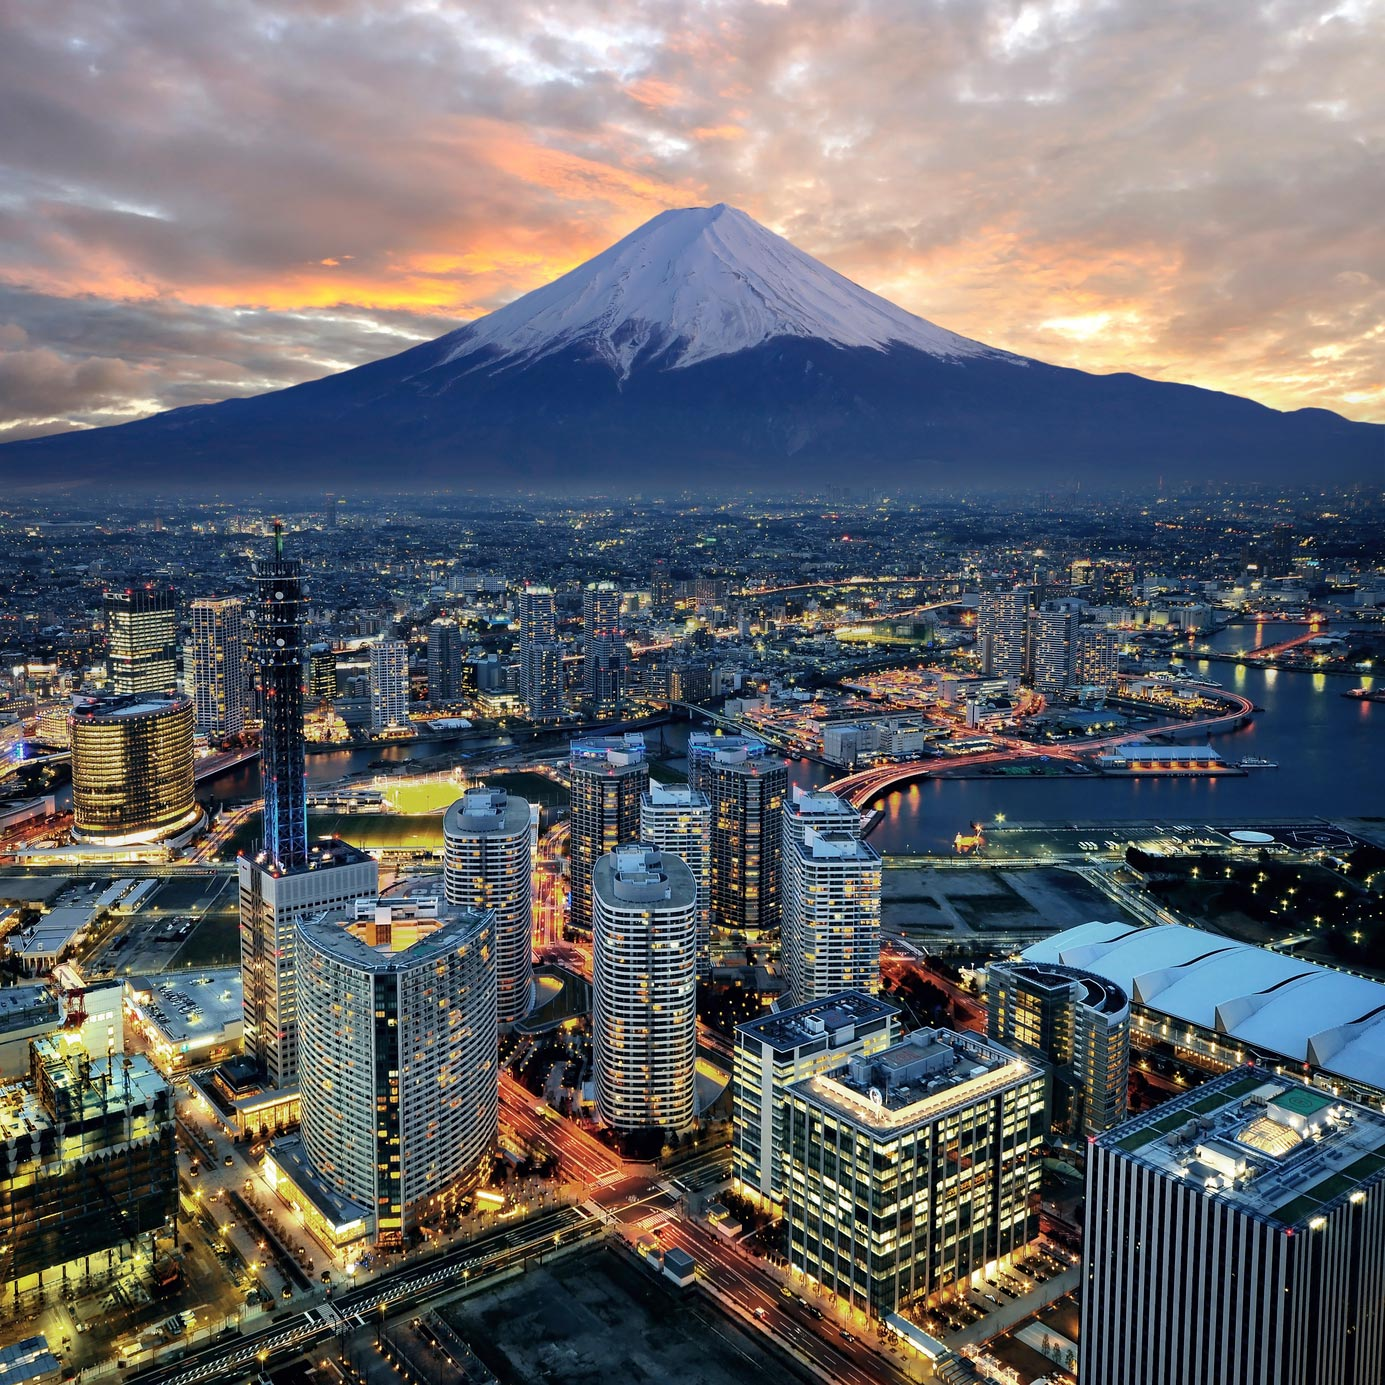 Yokohama and Mt. Fuji